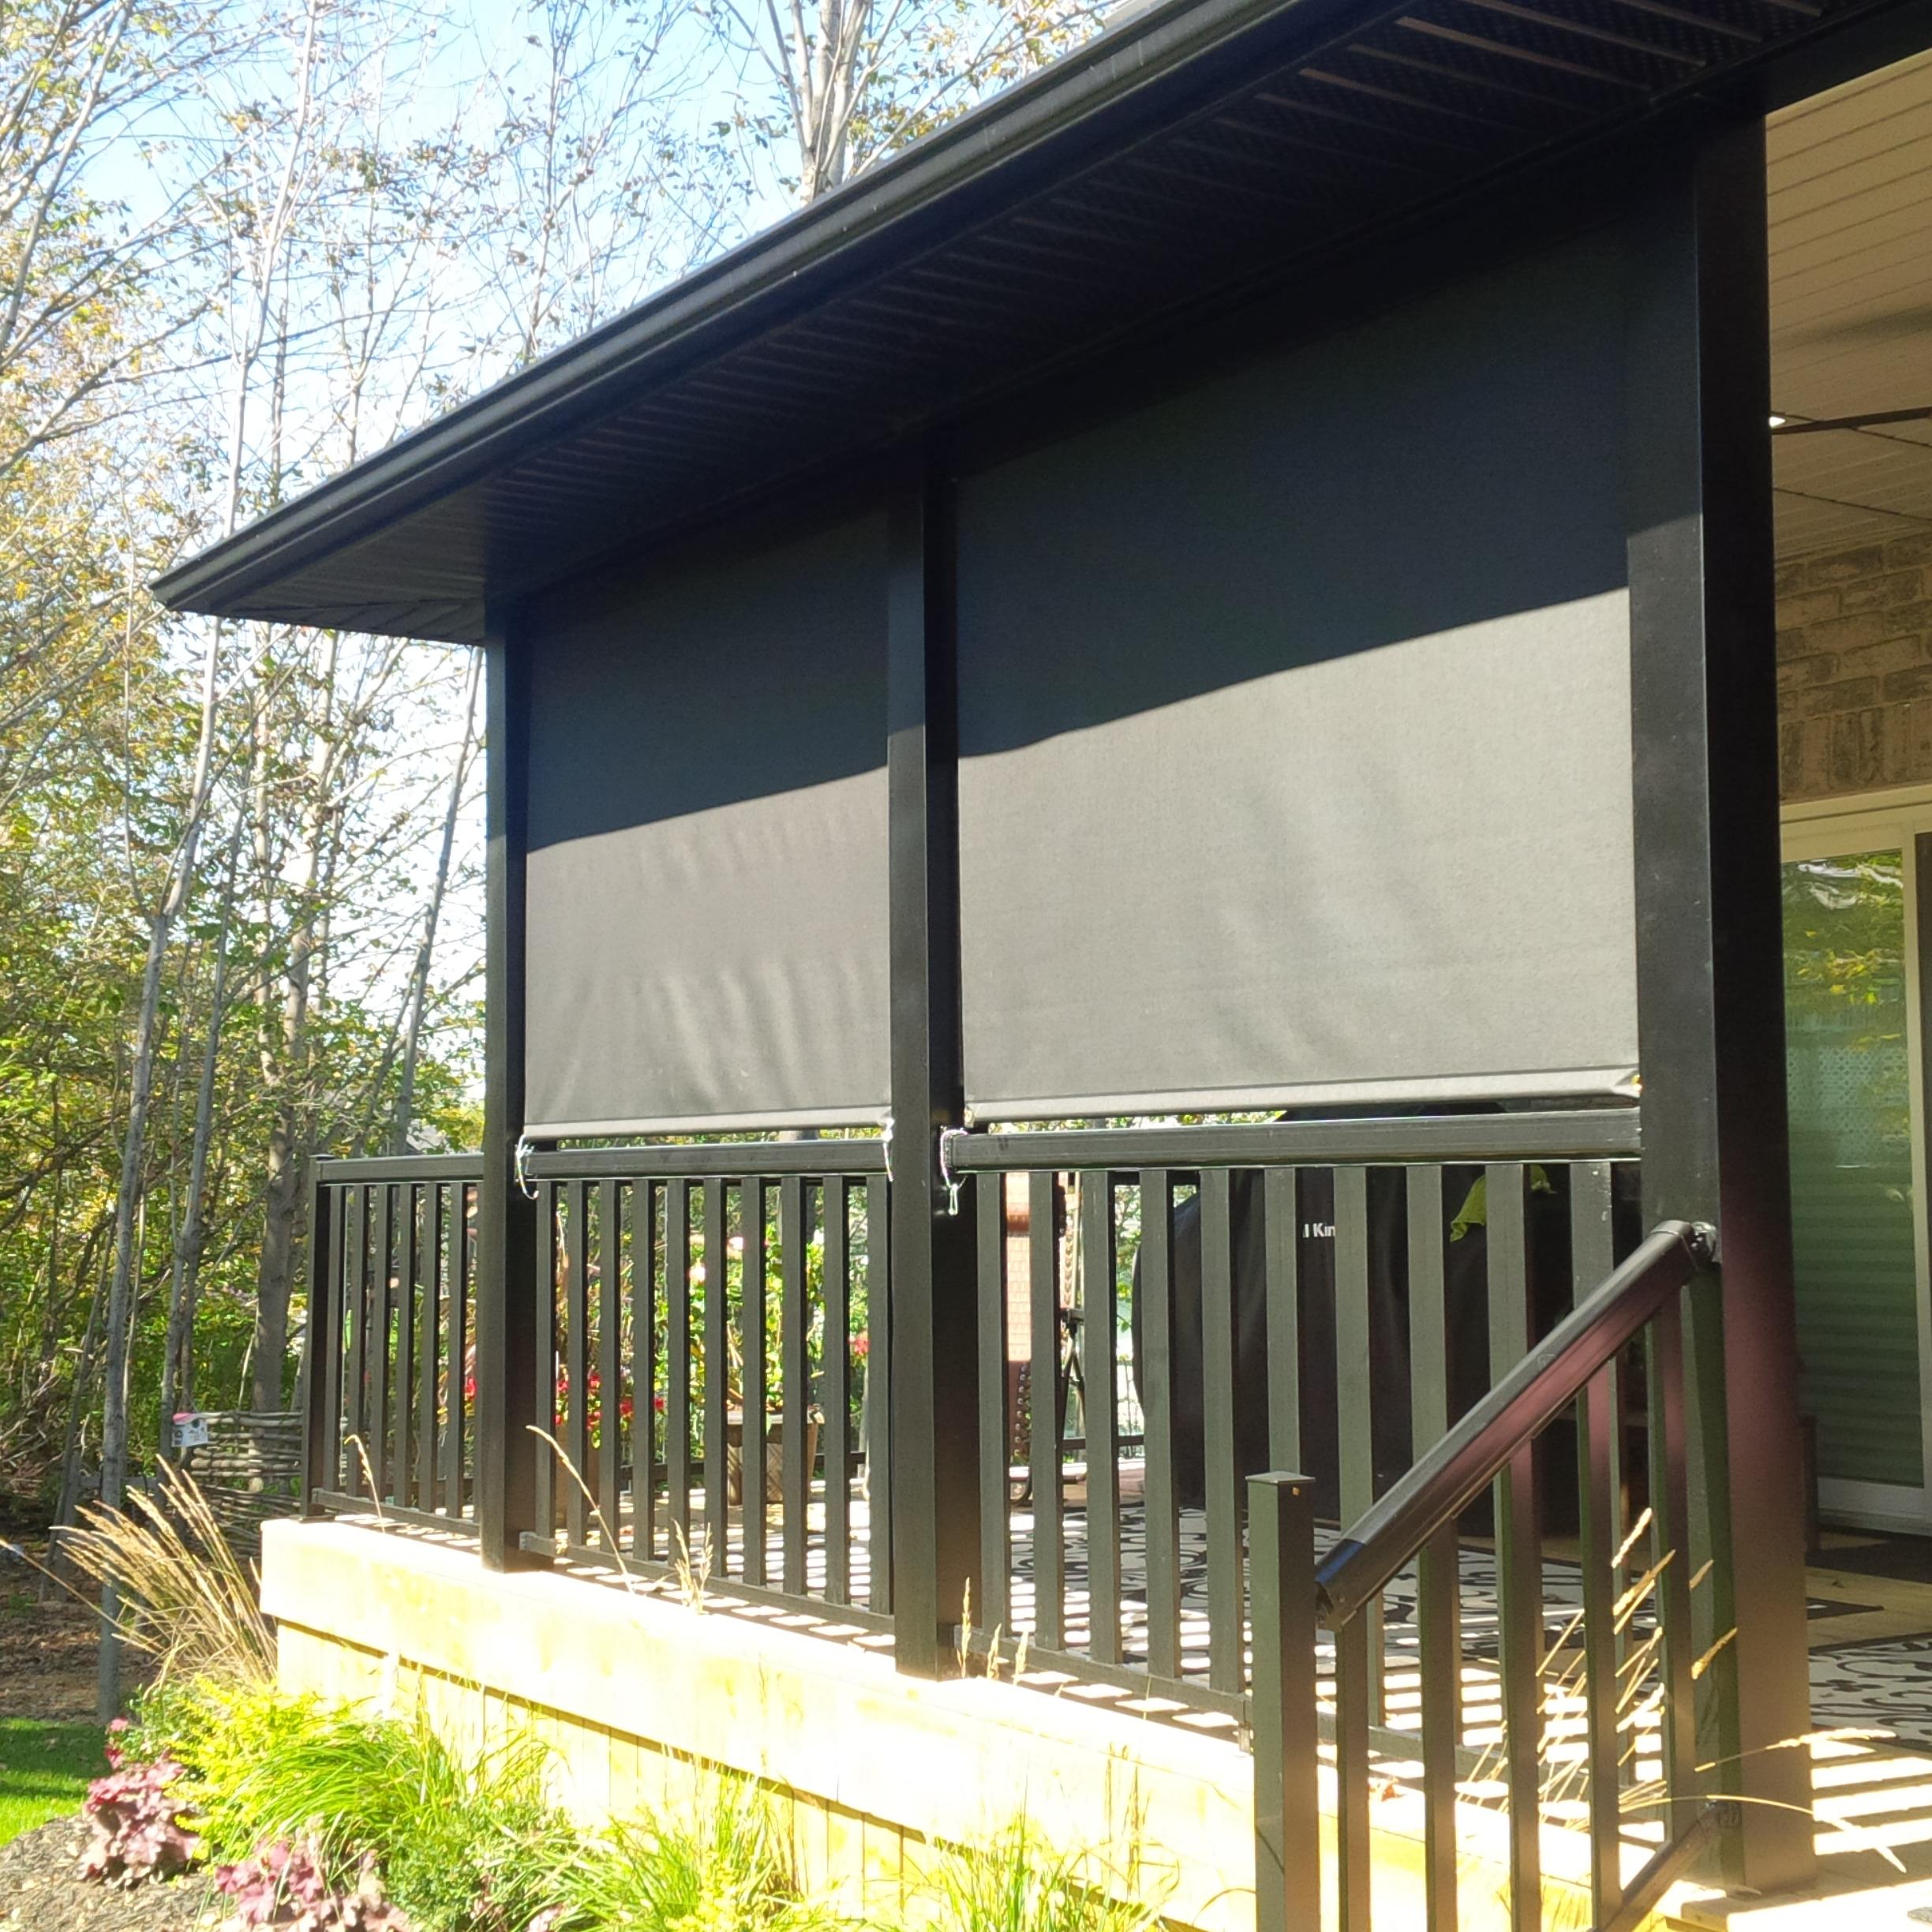 Budget Blinds à Waterloo: These clients wanted some refuge from the sun as well as a little privacy from the neighbours. The black fascia box at the top discretely hides the roll of fabric when not in use and protects the shade from the elements. Cable guides at the sides prevent the shade from swinging in the wind.